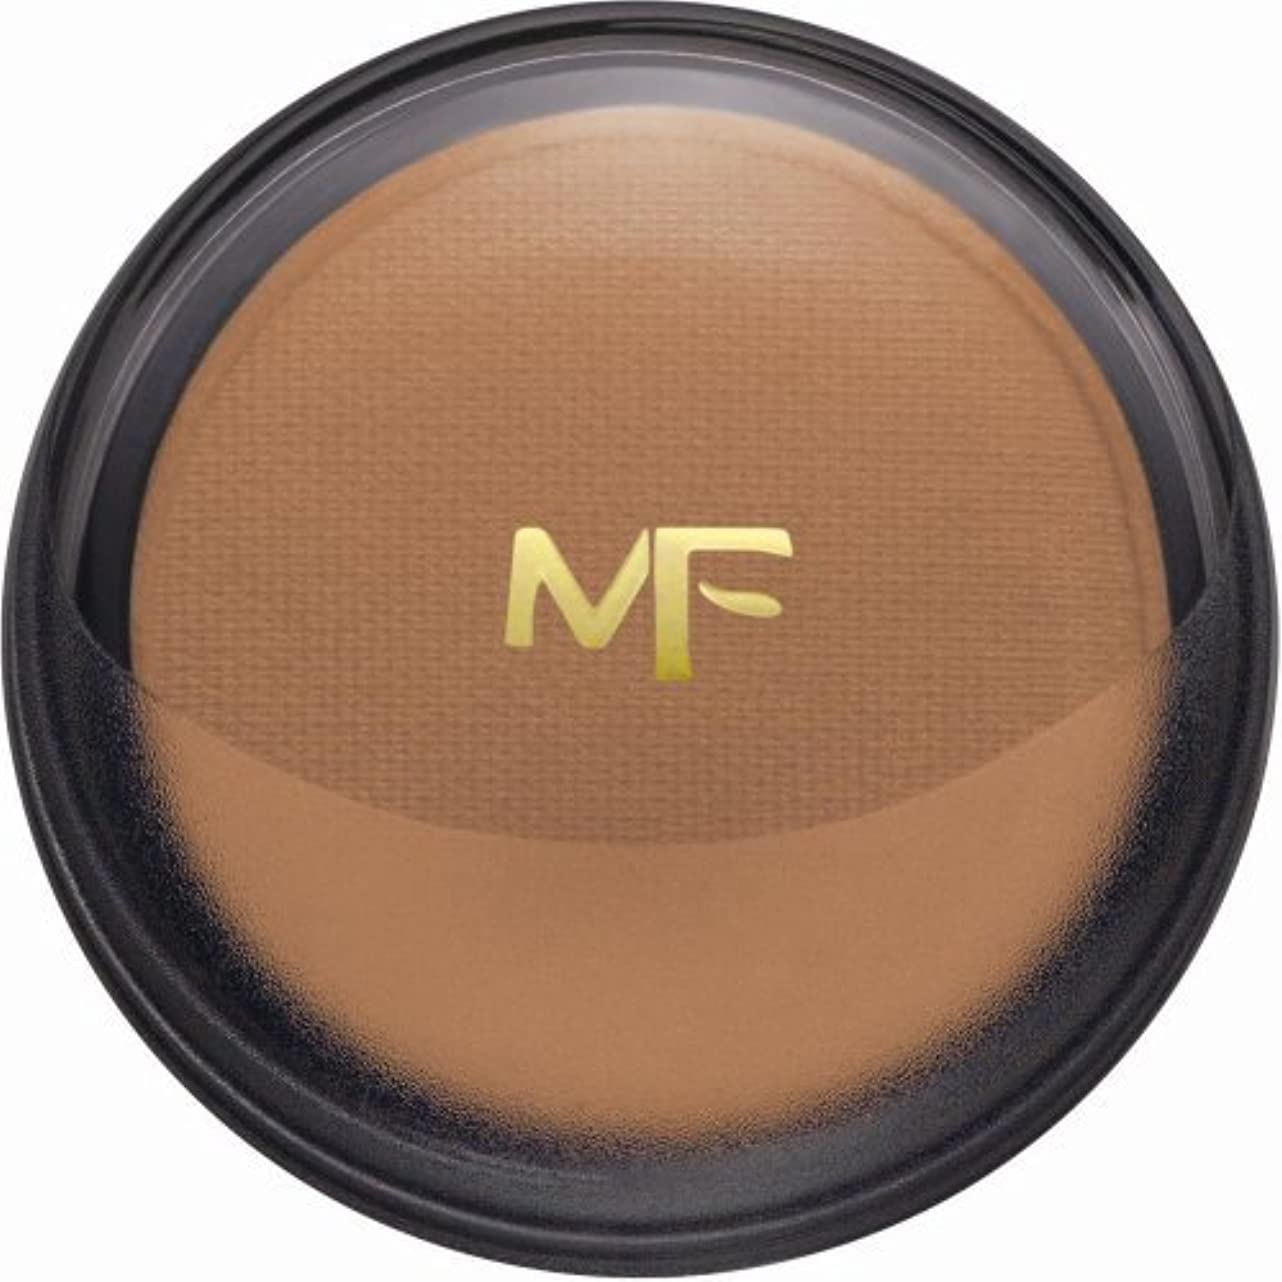 息苦しい大学義務付けられたMax Factor Earth Spirit Eyeshadow - 108 Inca Bronze by Max Factor